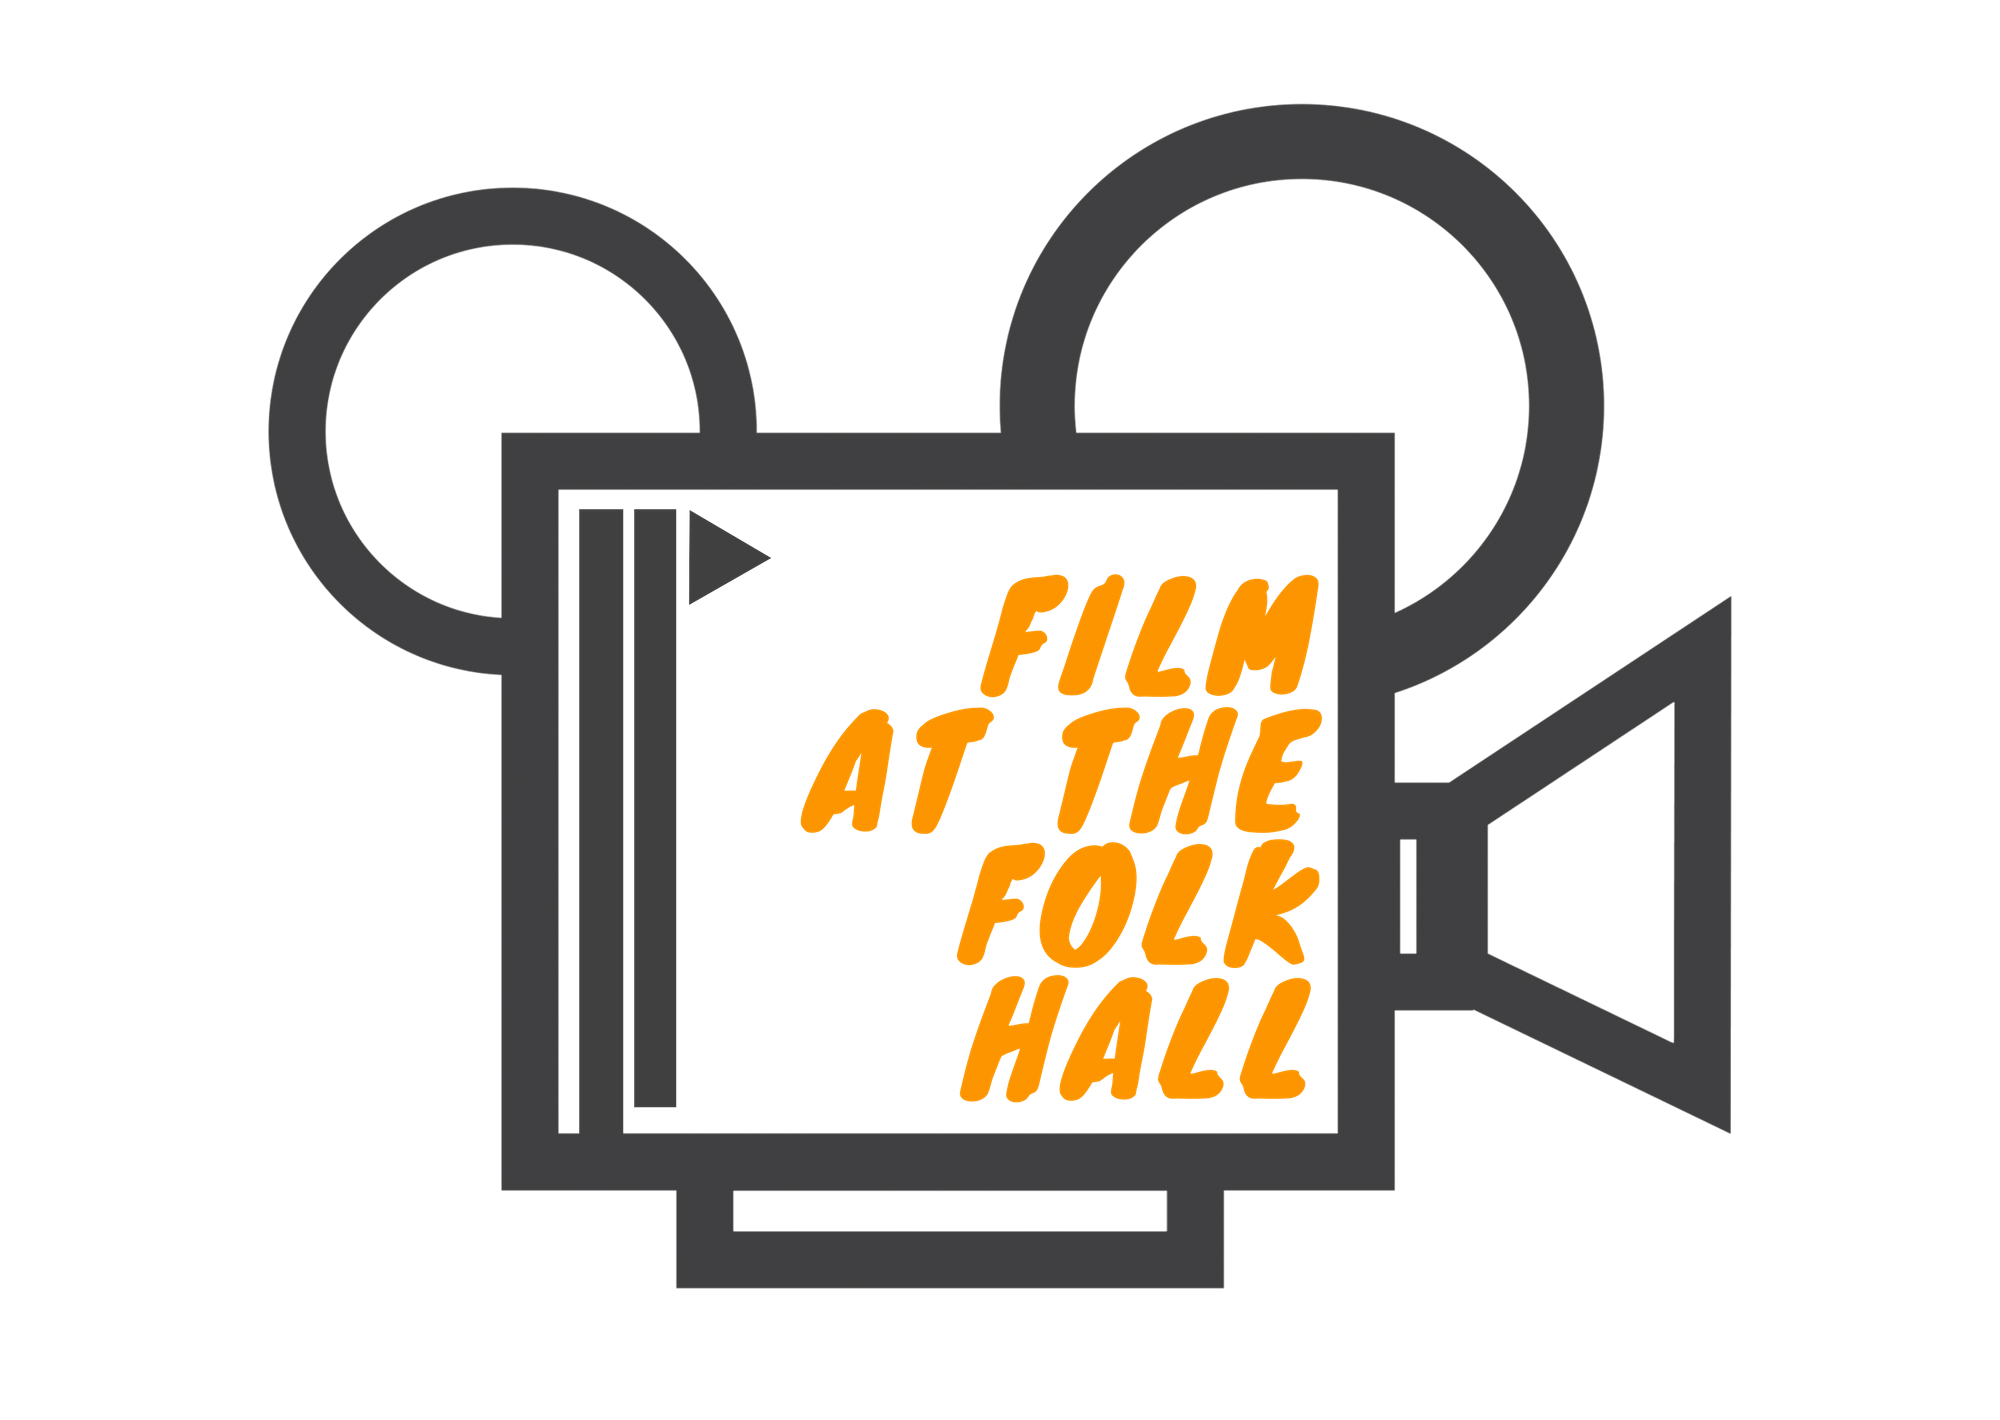 Film at the Folk Hall